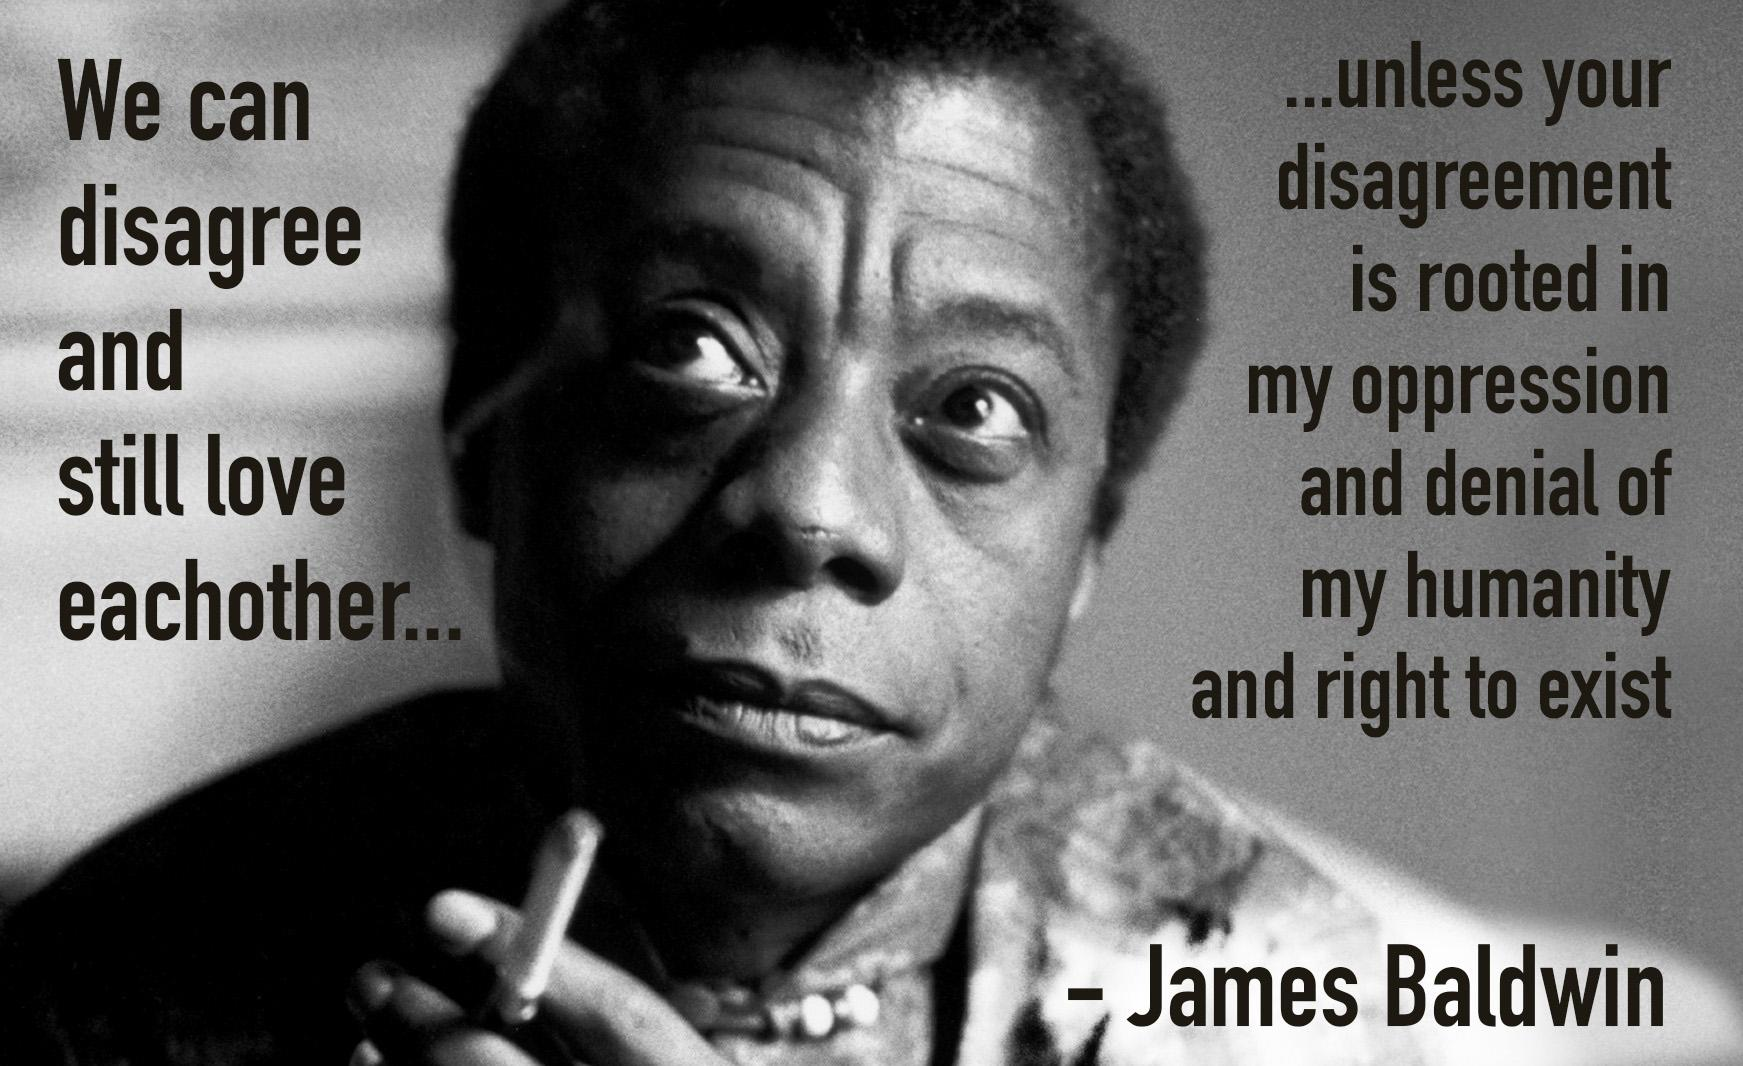 """We can disagree and still love each other, unless your disagreement is rooted in my oppression and denial of my humanity and right to exist"" – James Baldwin [1743 x 1066] [OC]"